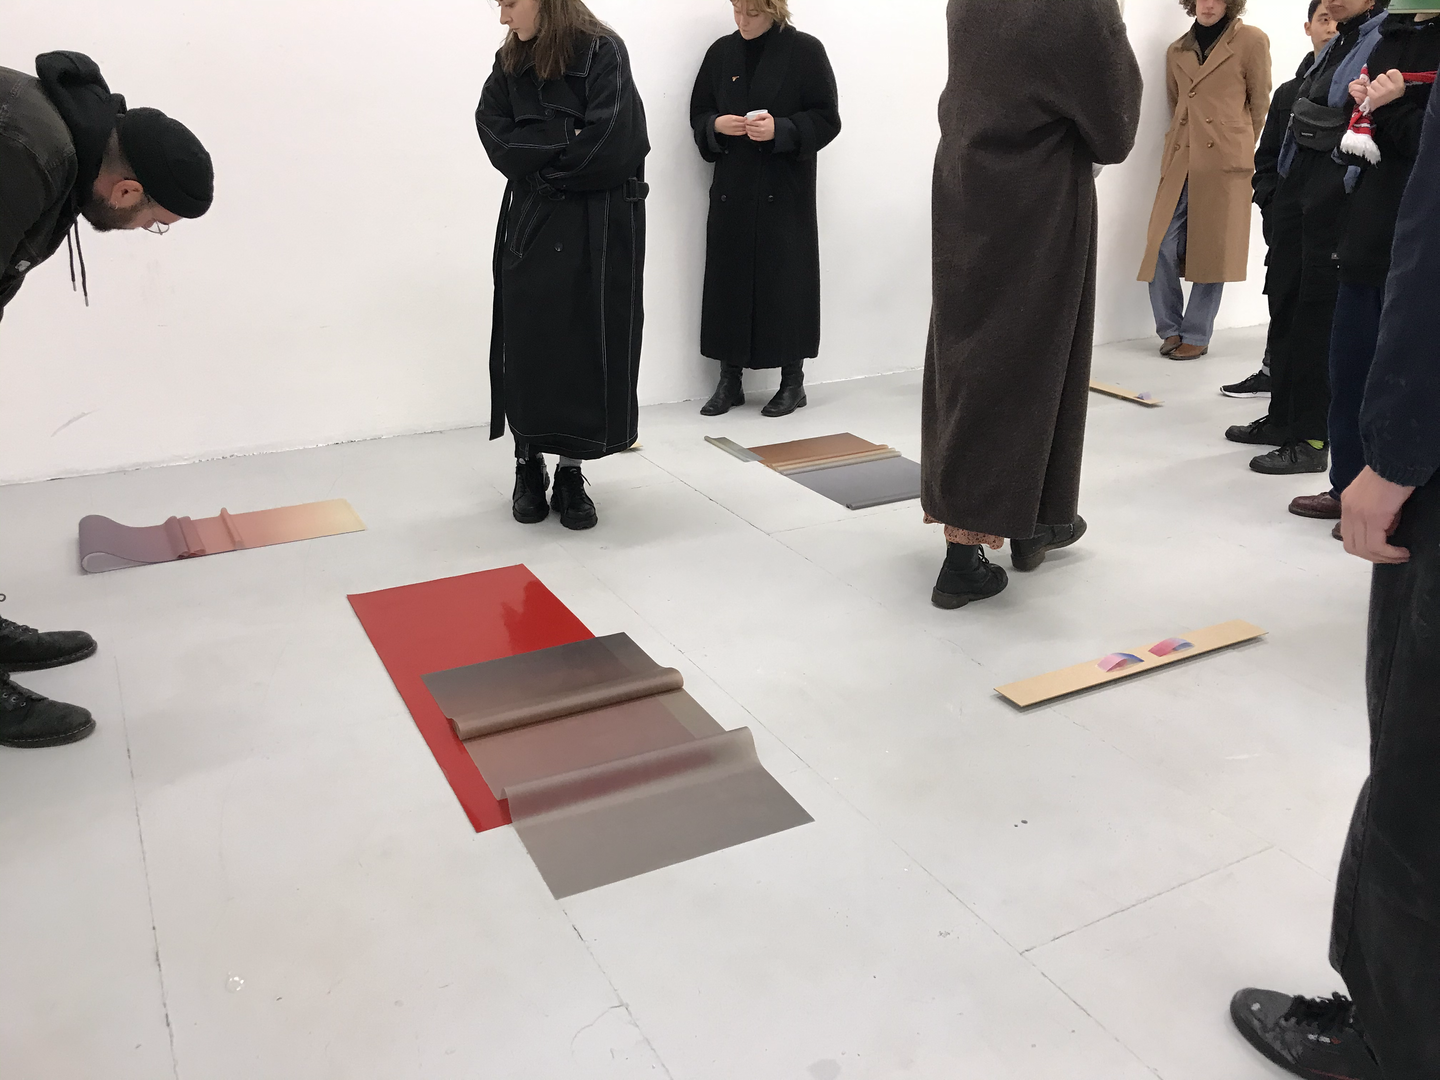 Installation view of Break Now the Dawn at Ben Pimlott Building, Goldsmiths, University of London. Dec 2019.